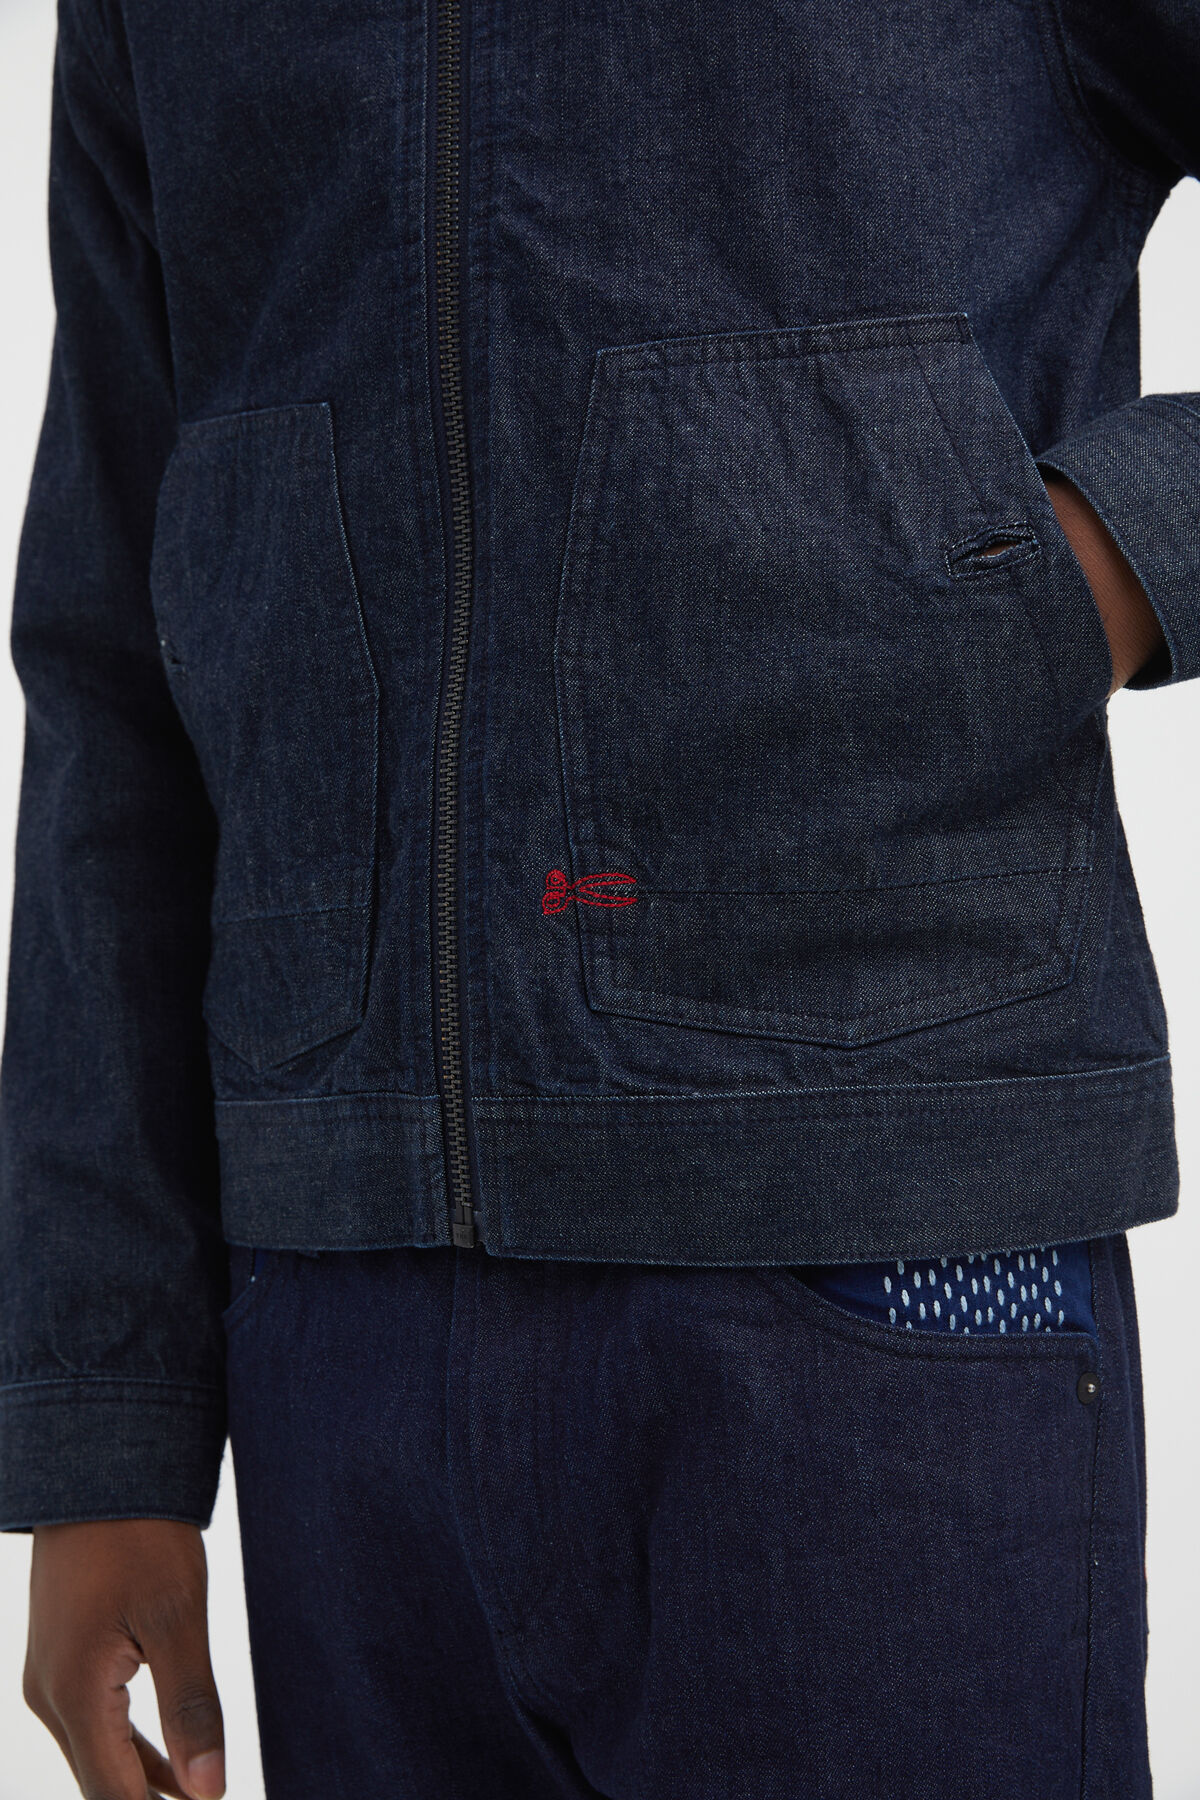 PACE JACKET 1MIX Boro Recycled Denim - Regular Fit